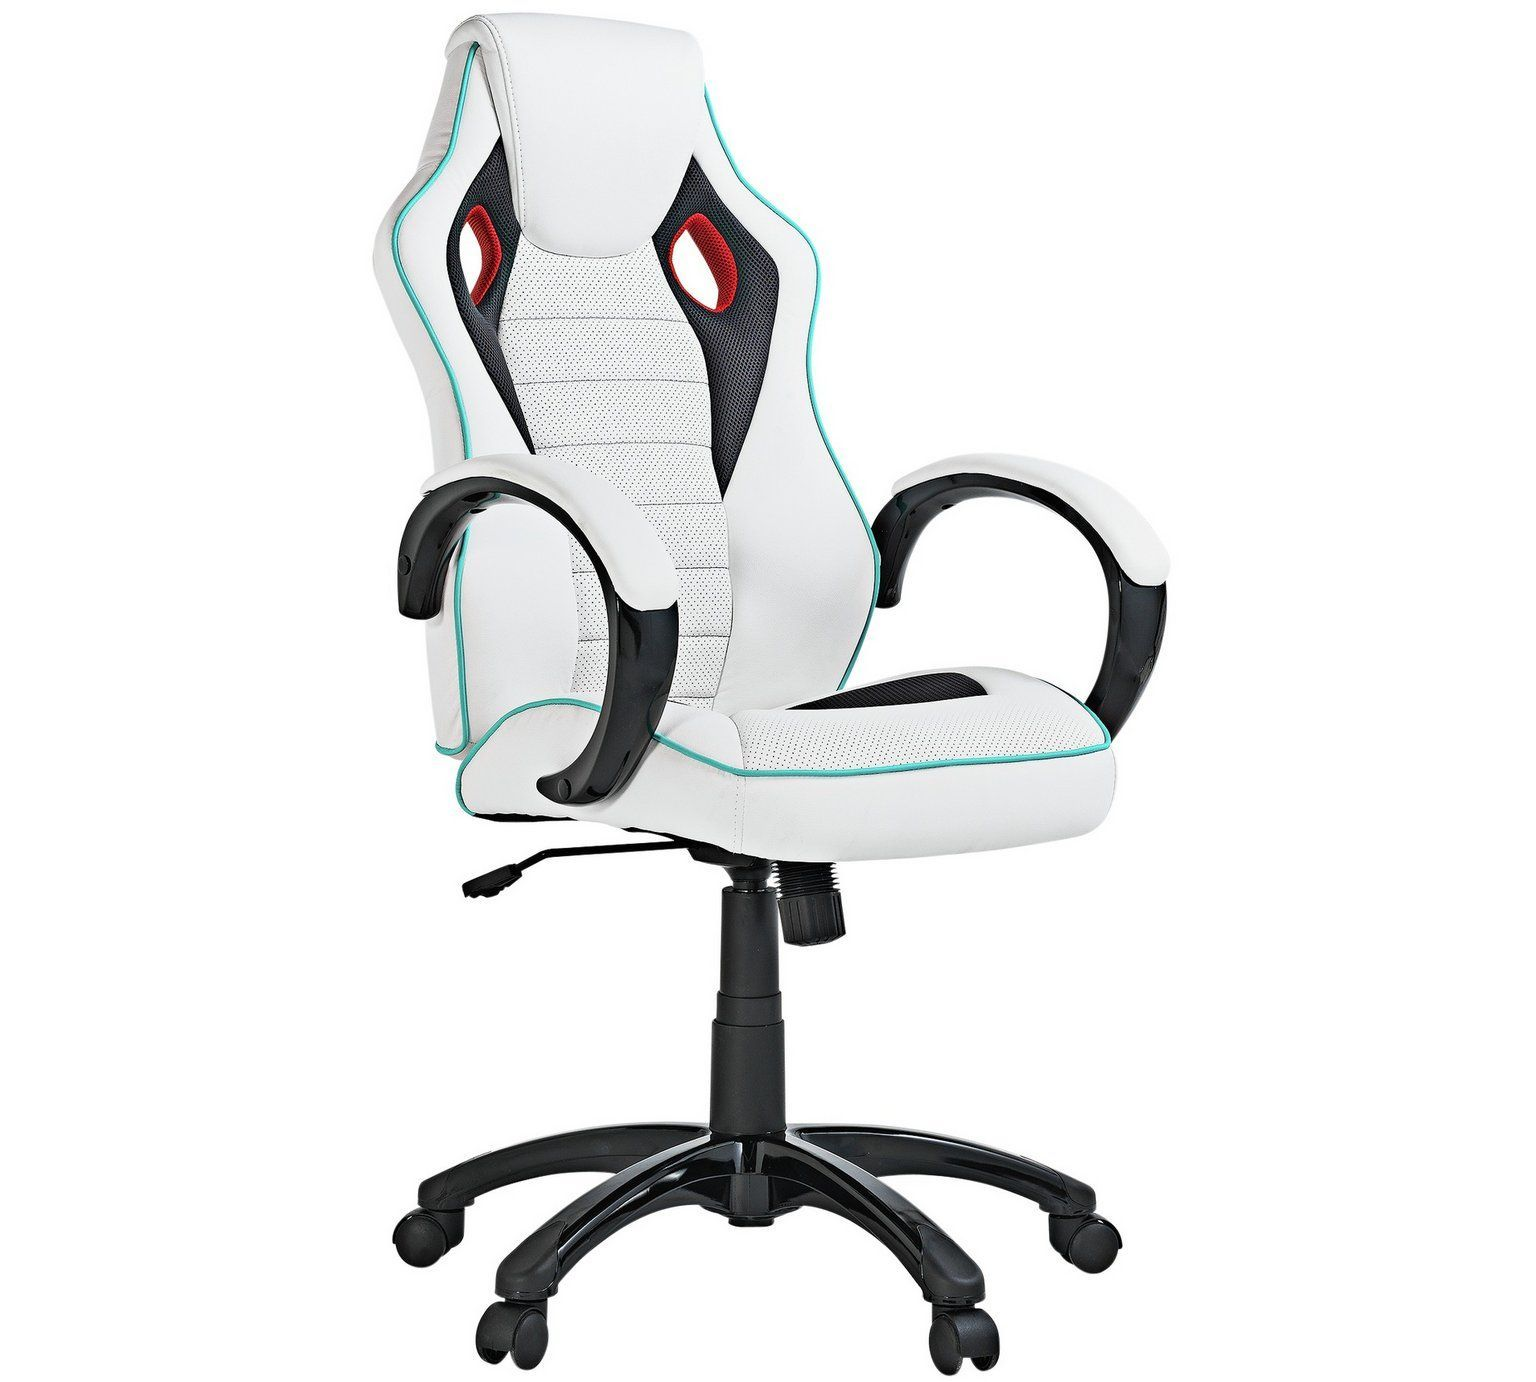 Strange Buy X Rocker Height Adjustable Office Gaming Chair White Inzonedesignstudio Interior Chair Design Inzonedesignstudiocom